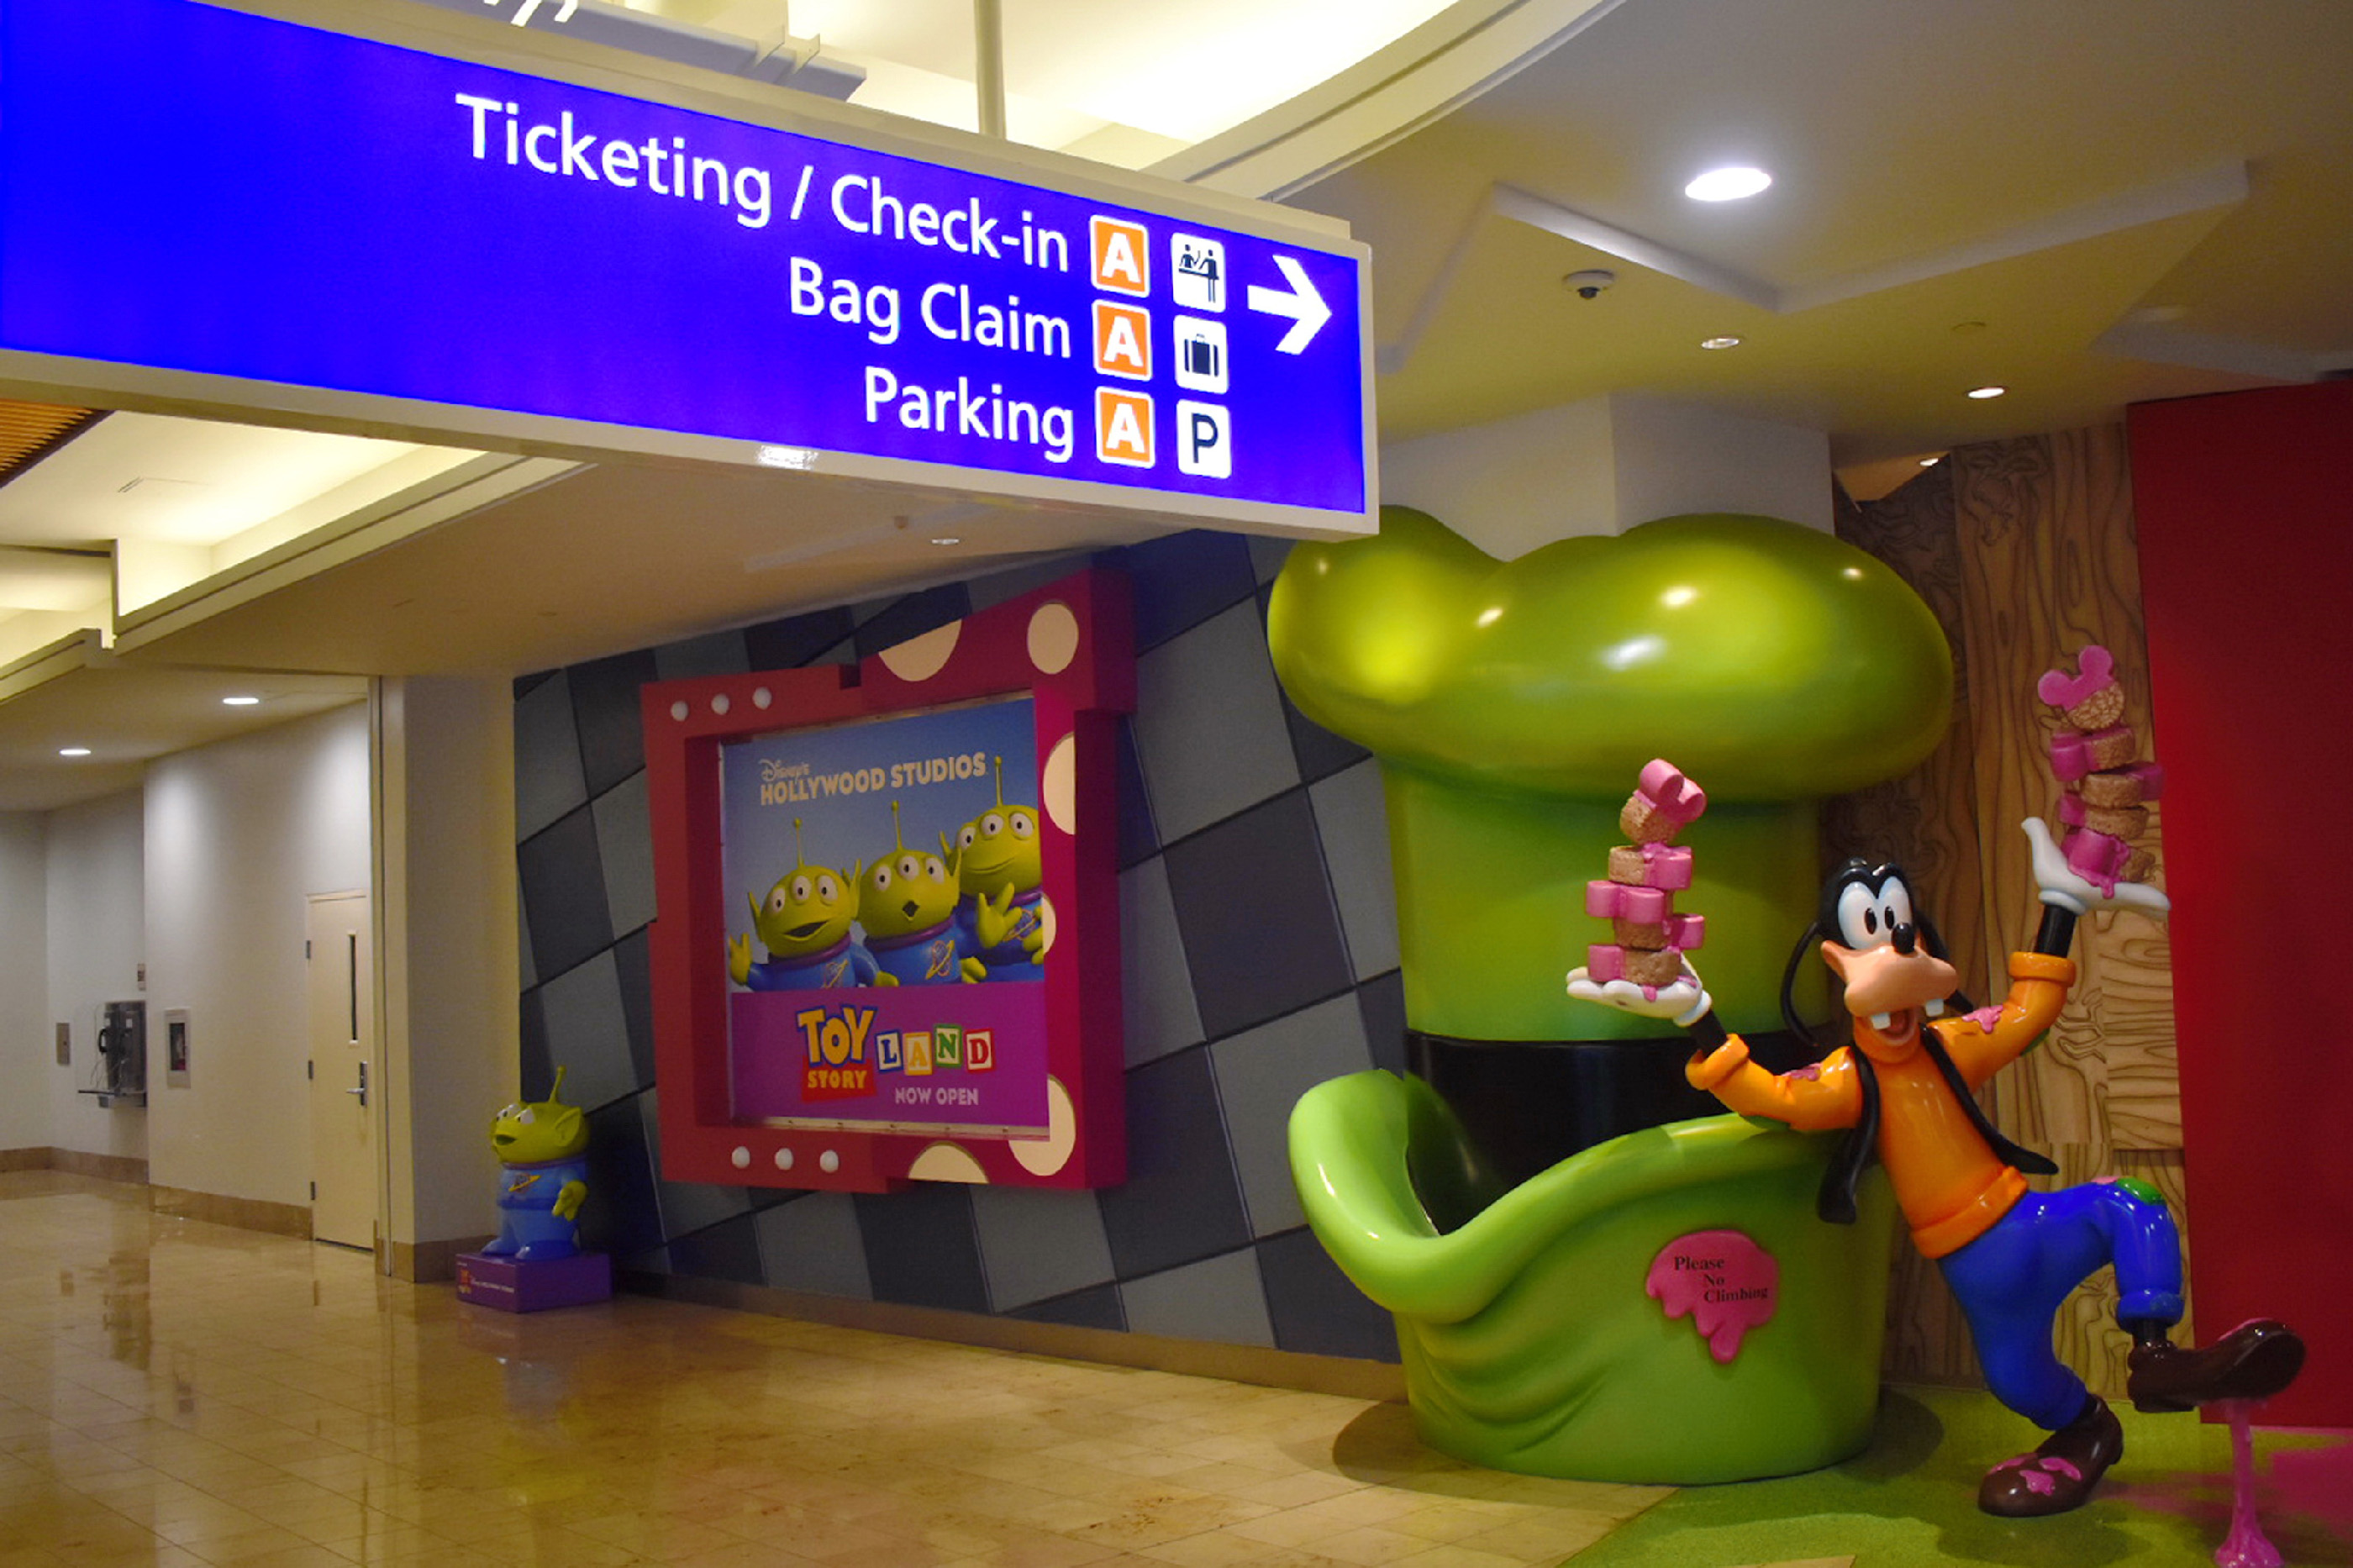 Orlando, Florida; August 28, 2018: Ticketing and Check in information sign at the airport and Goofy.